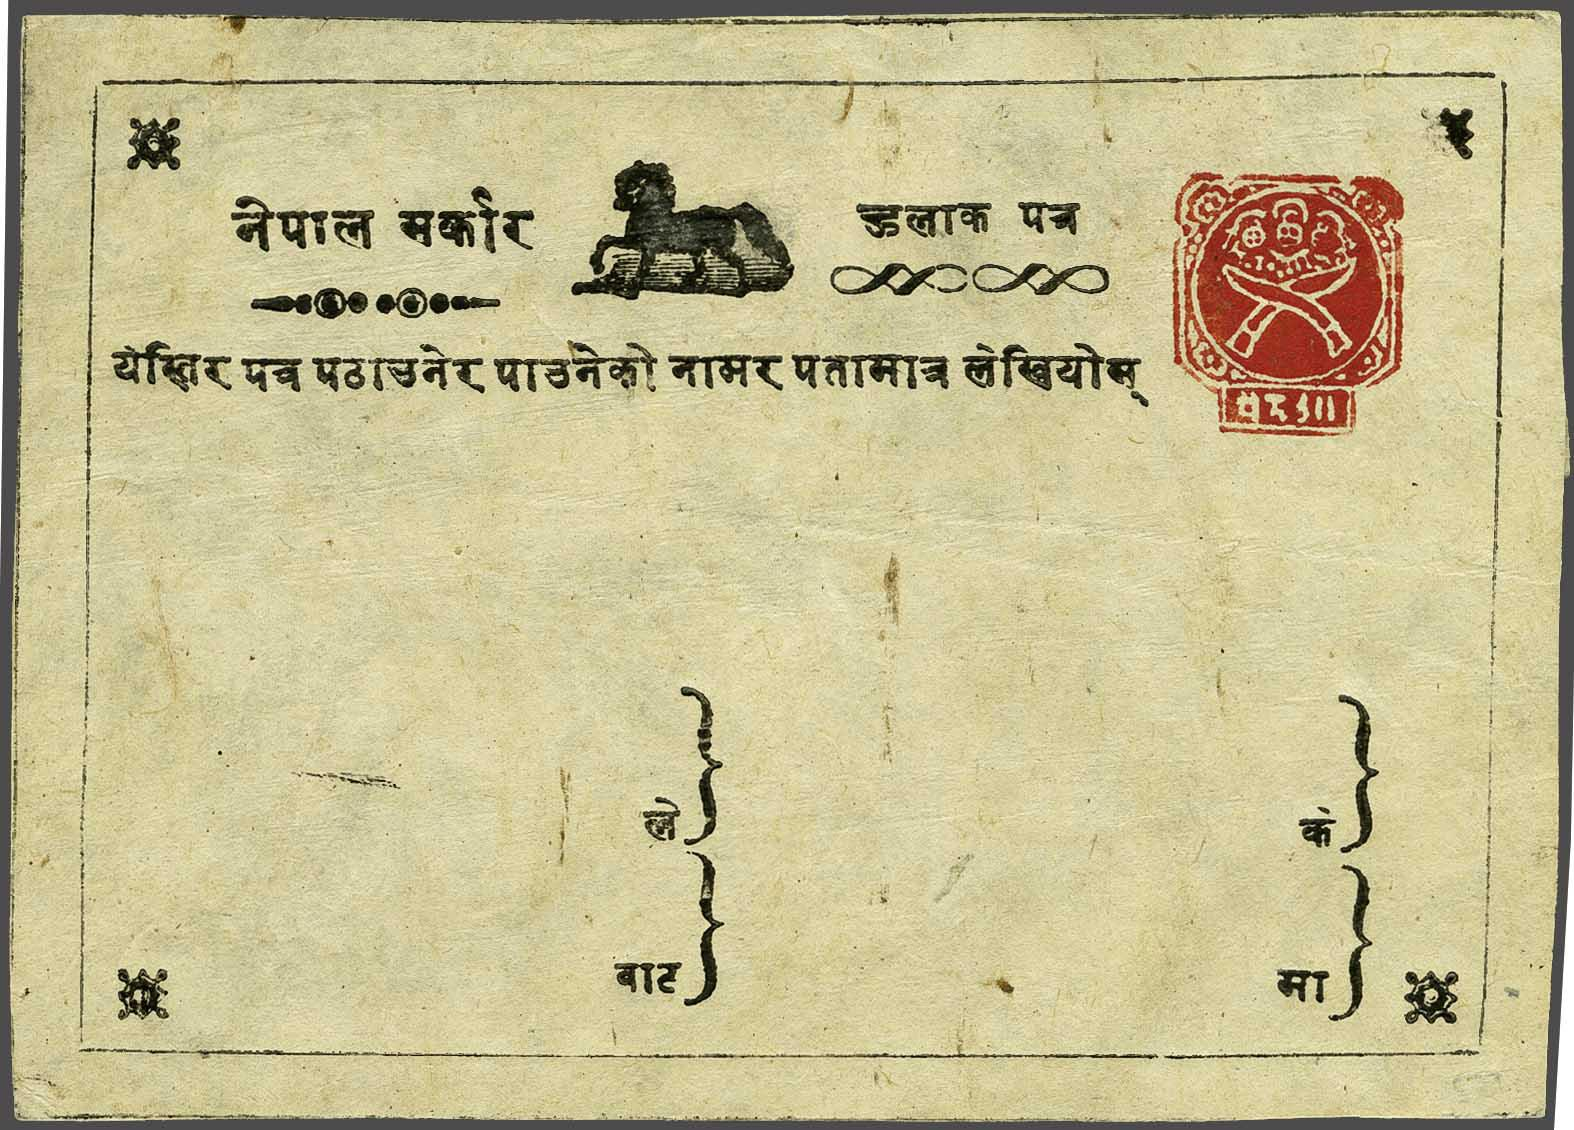 Lot 2 - Great Britain and former colonies Nepal -  Corinphila Veilingen Auction 245-246 Day 1 - Nepal - The Dick van der Wateren Collection, Foreign countries - Single lots, Picture postcards